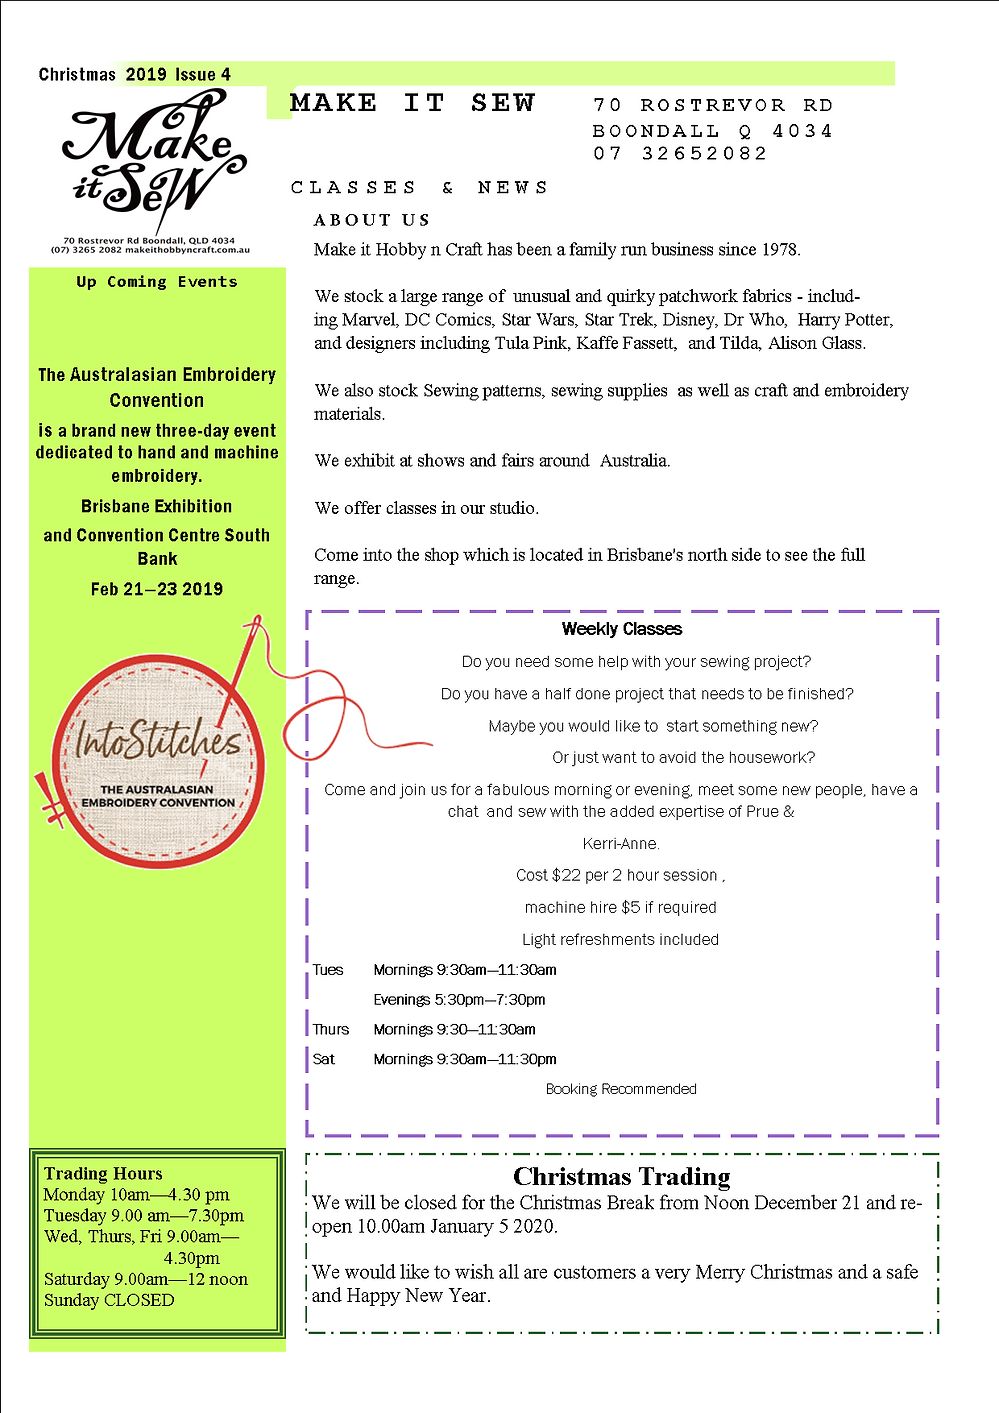 newsletter Christmas 2019 Issue 4.png